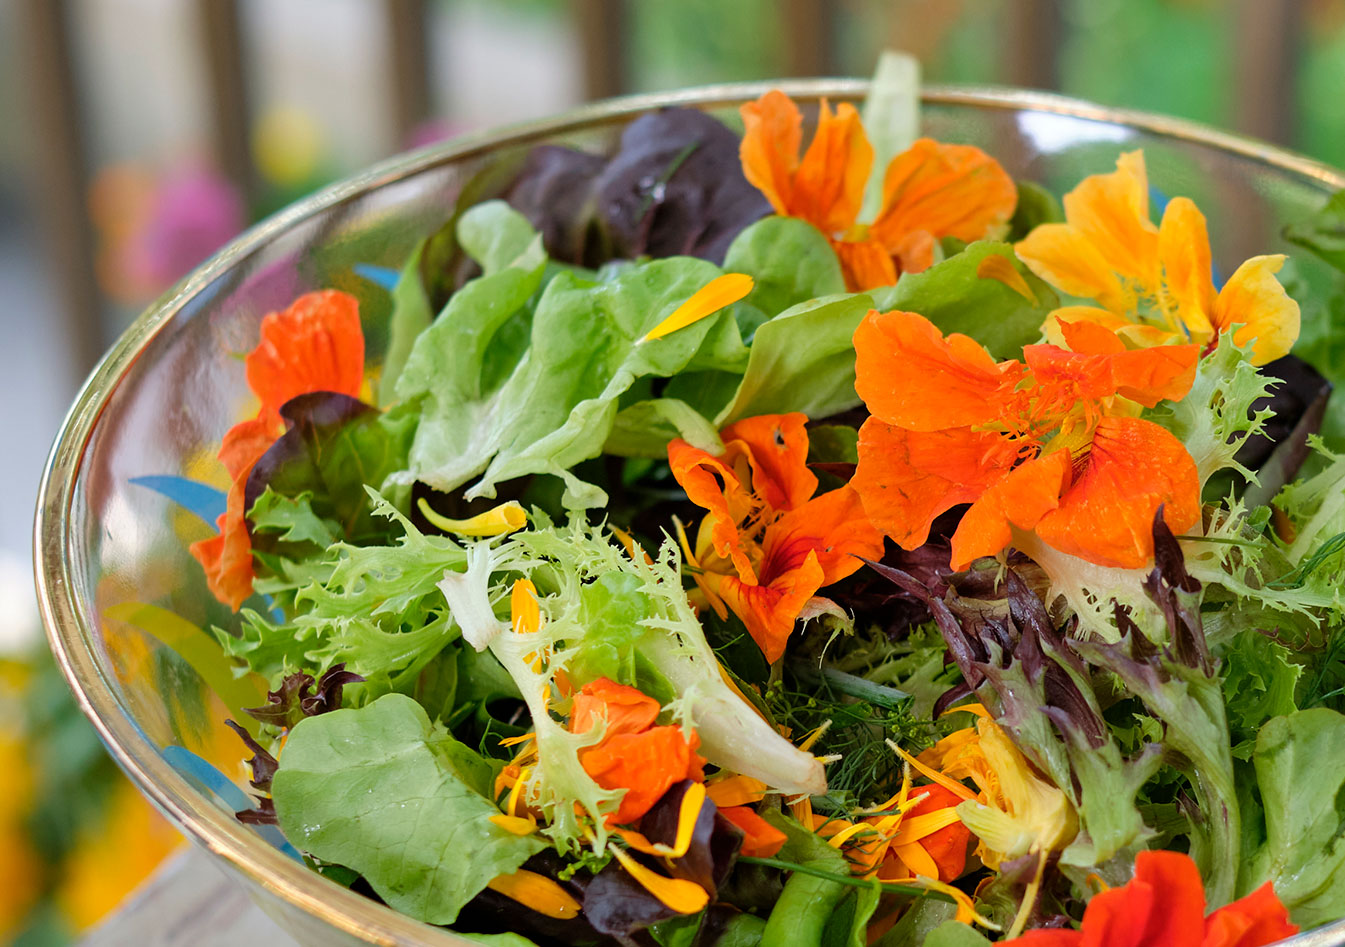 The Fairy Mix Salad mix from the Blandford Nature Center- with fresh Nasturtium